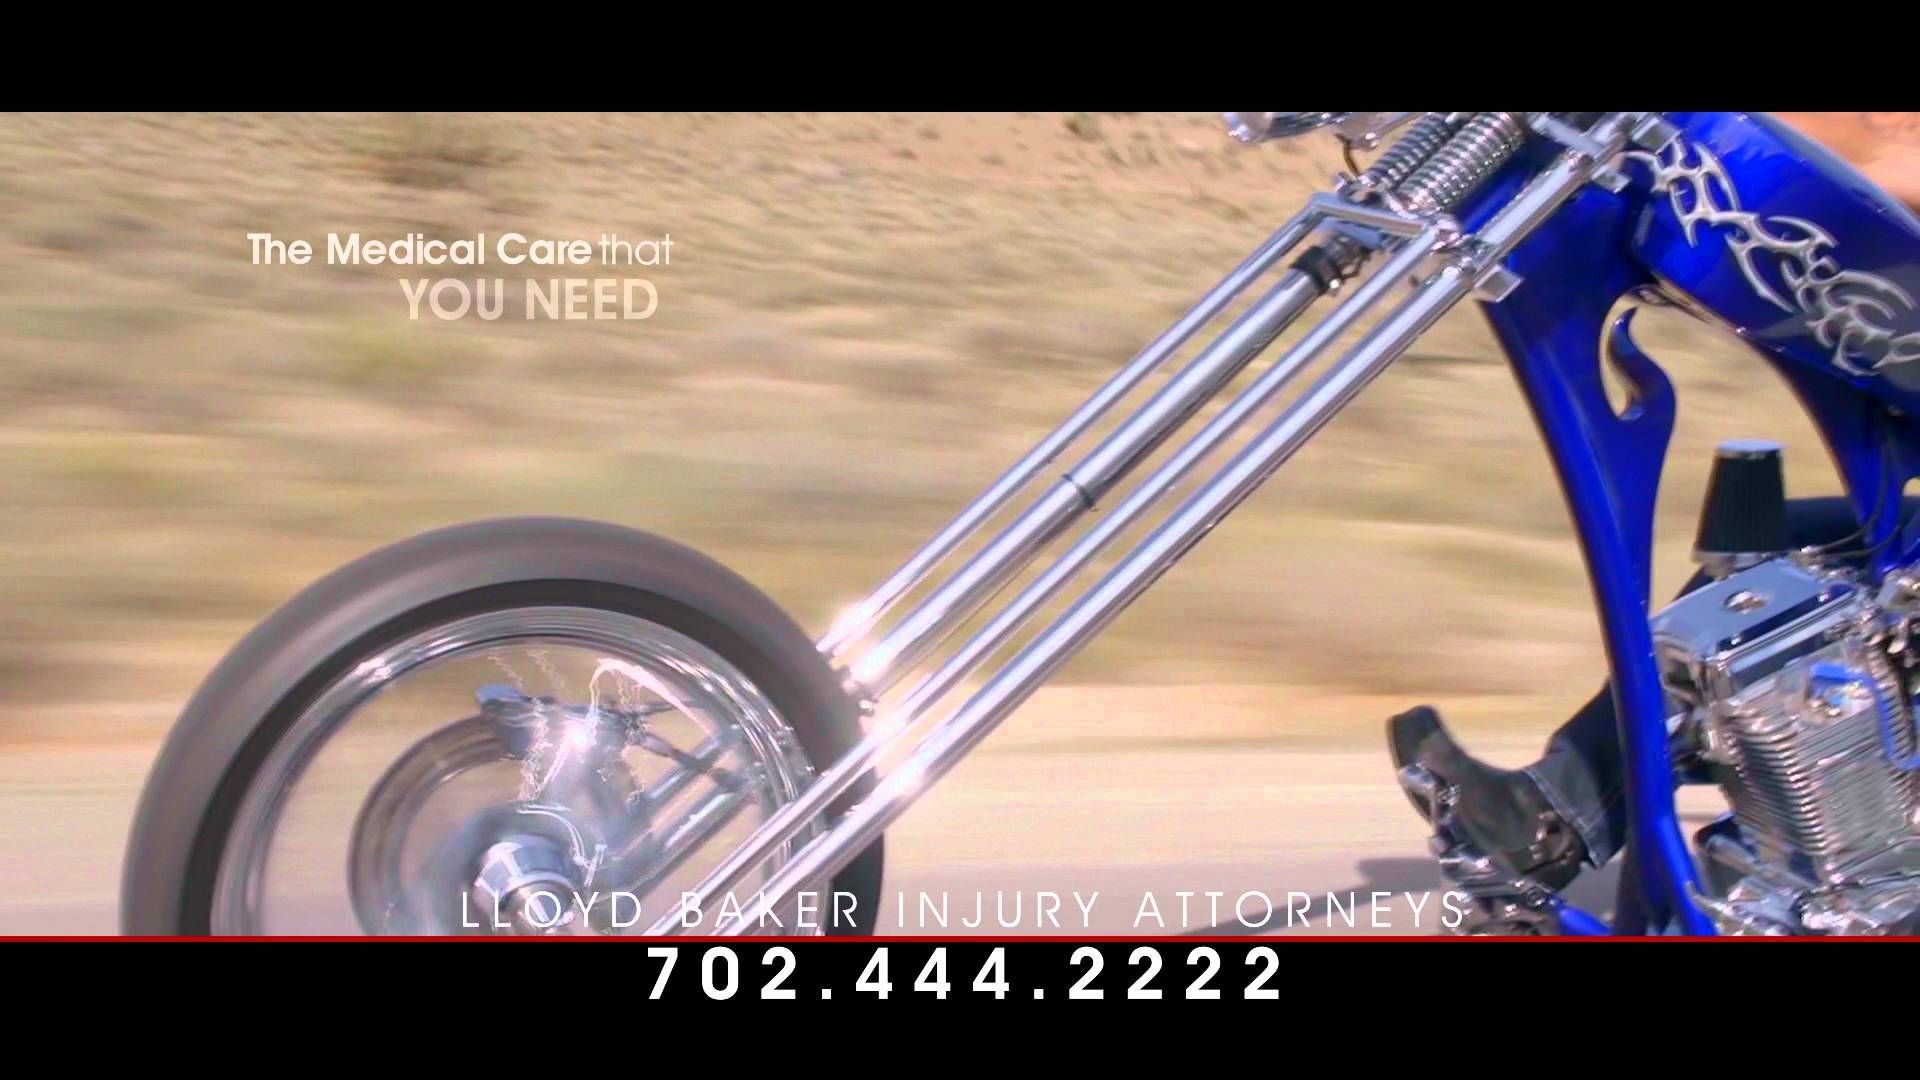 Injured in a car wreck? Call Attorney Lloyd Baker at 702-444